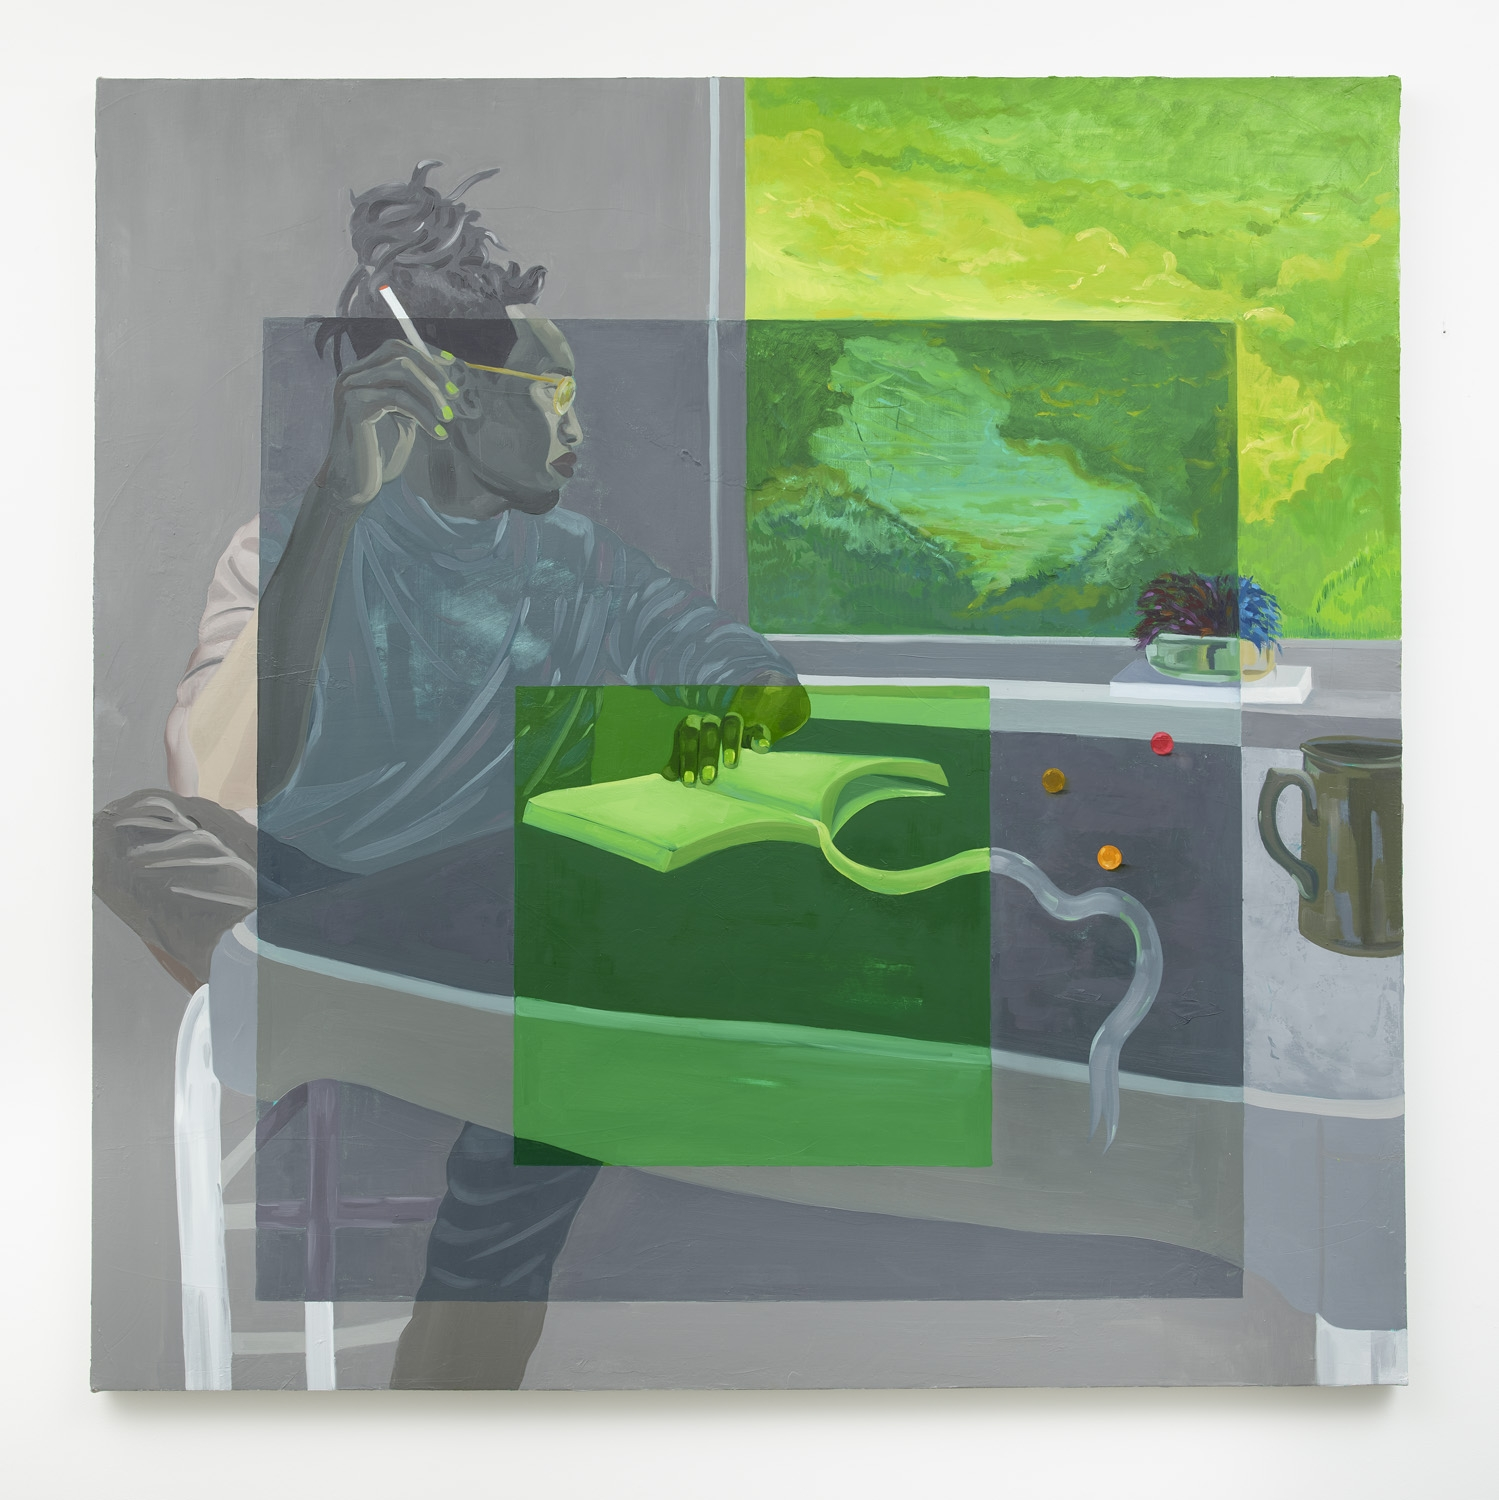 DOMINIC CHAMBERS, After Albers (Africanus), 2021